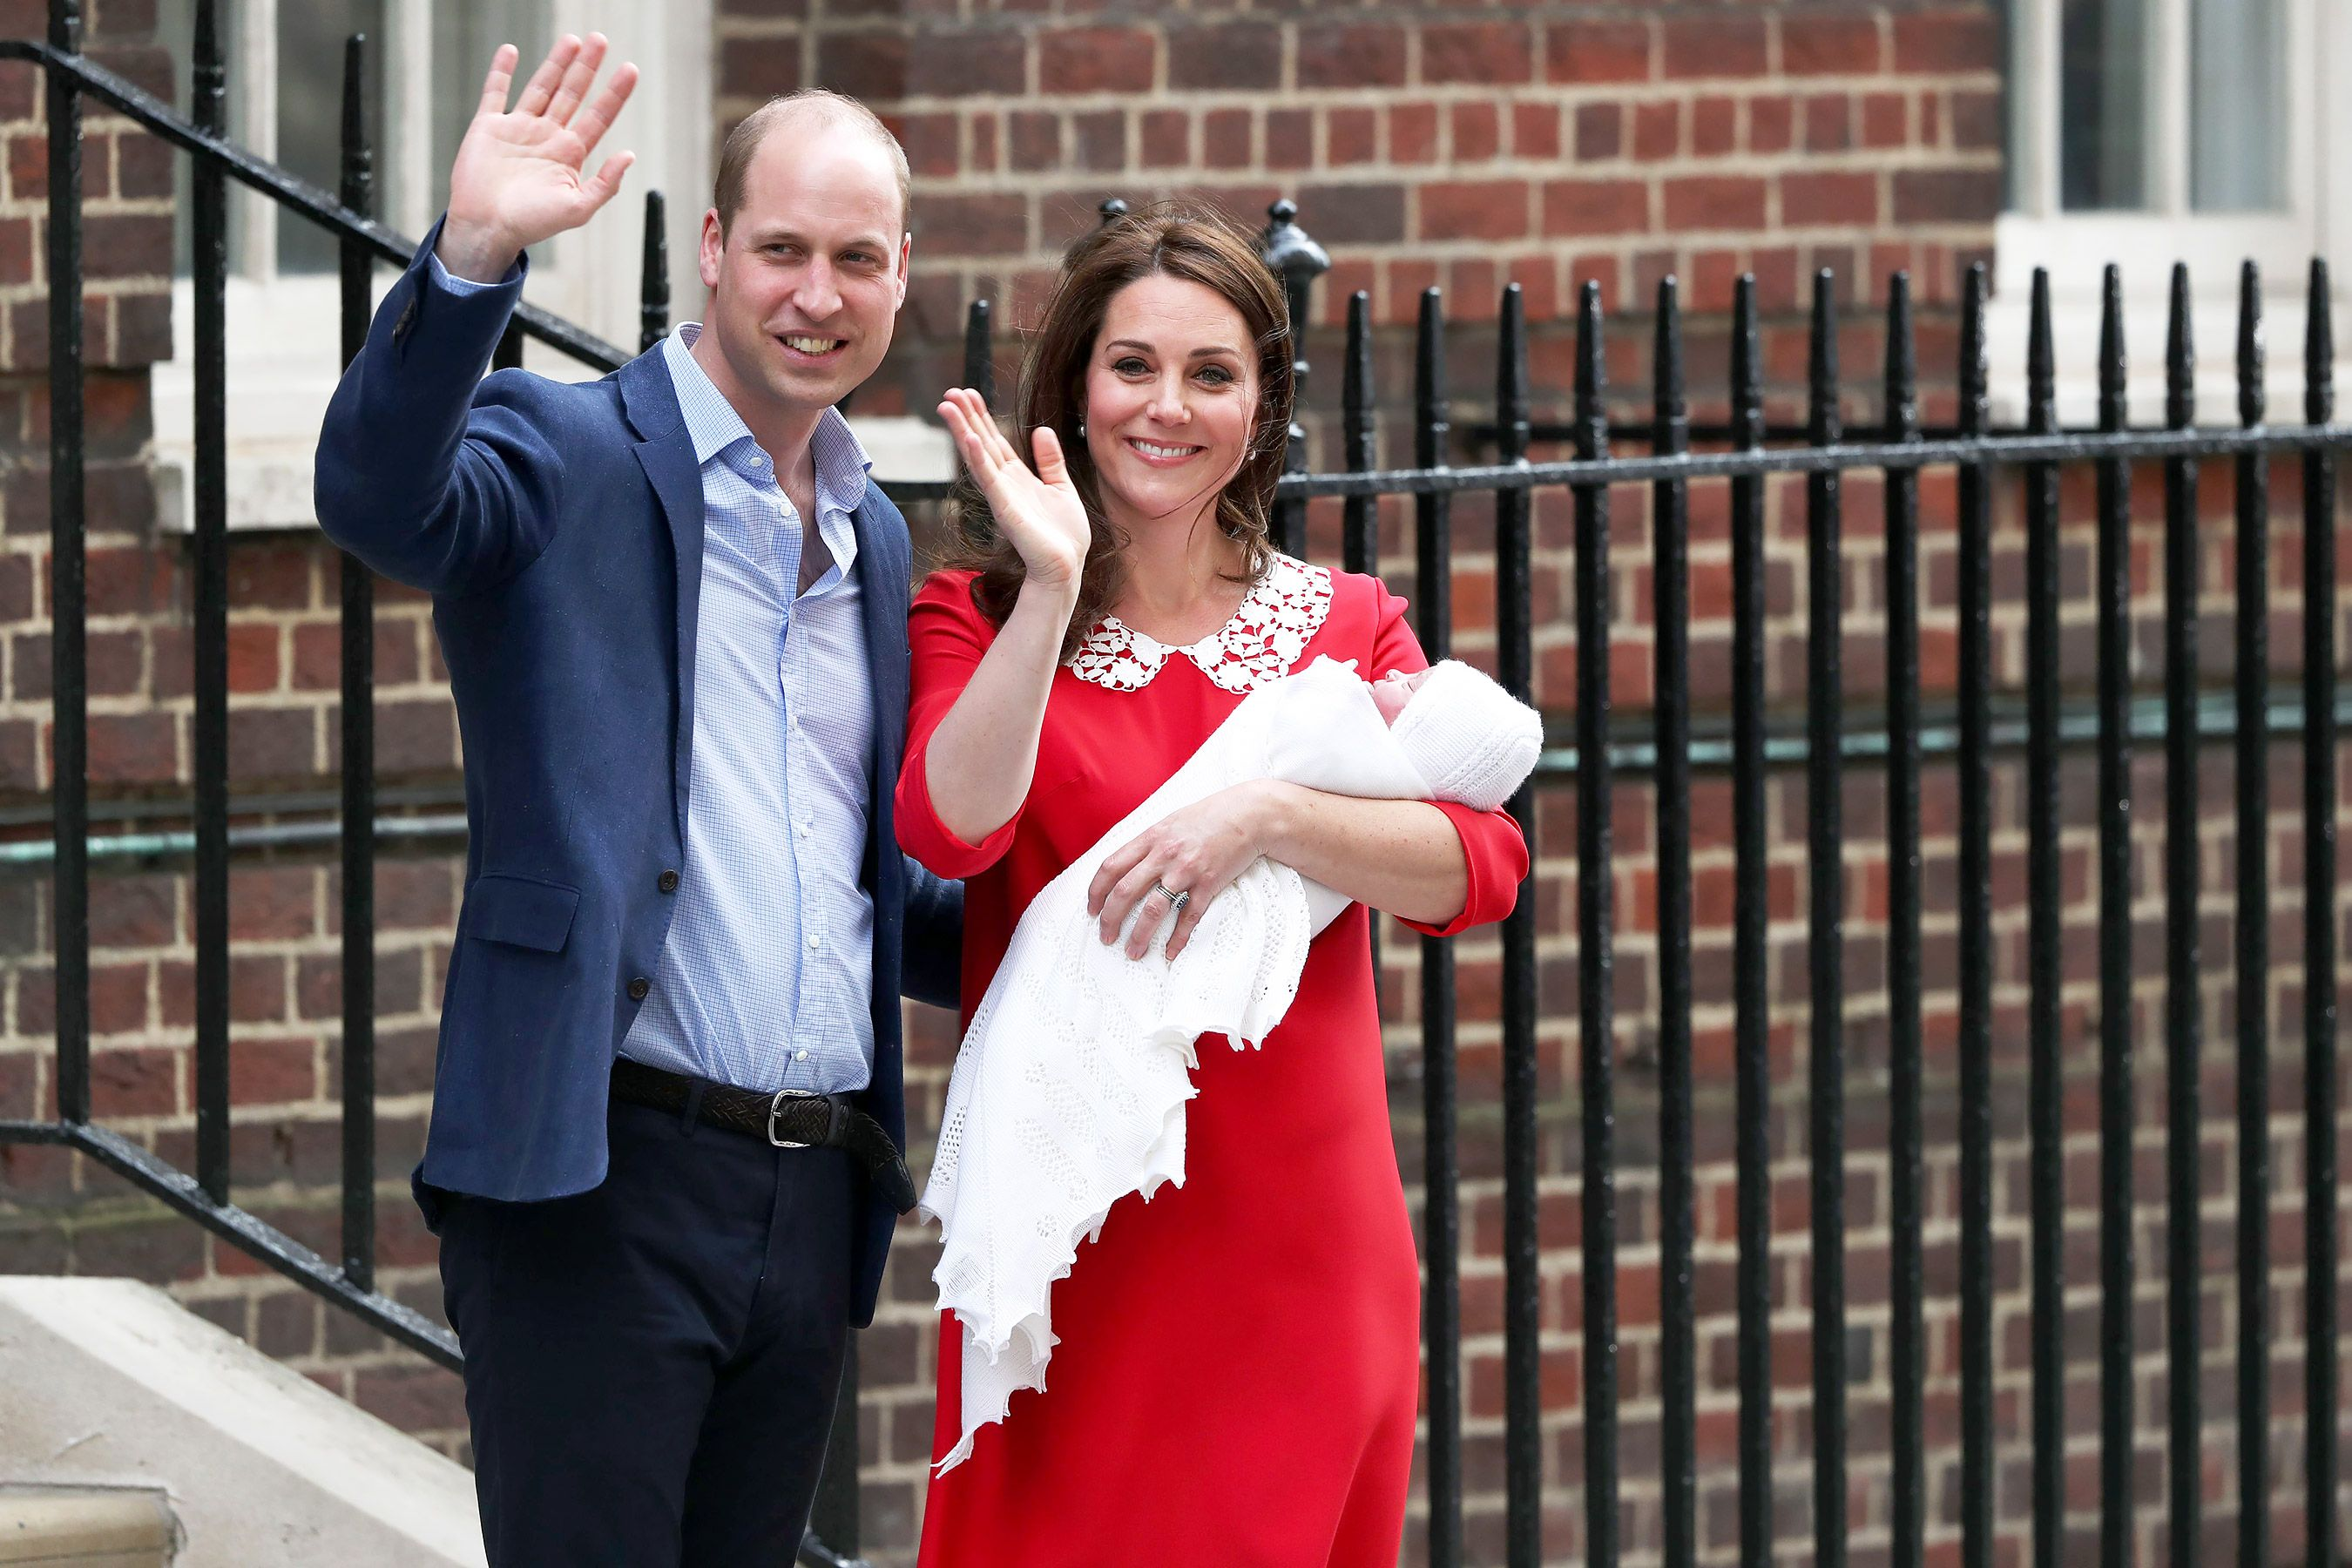 Why Does Kate Middleton Leave the Hospital So Soon After Giving Birth?